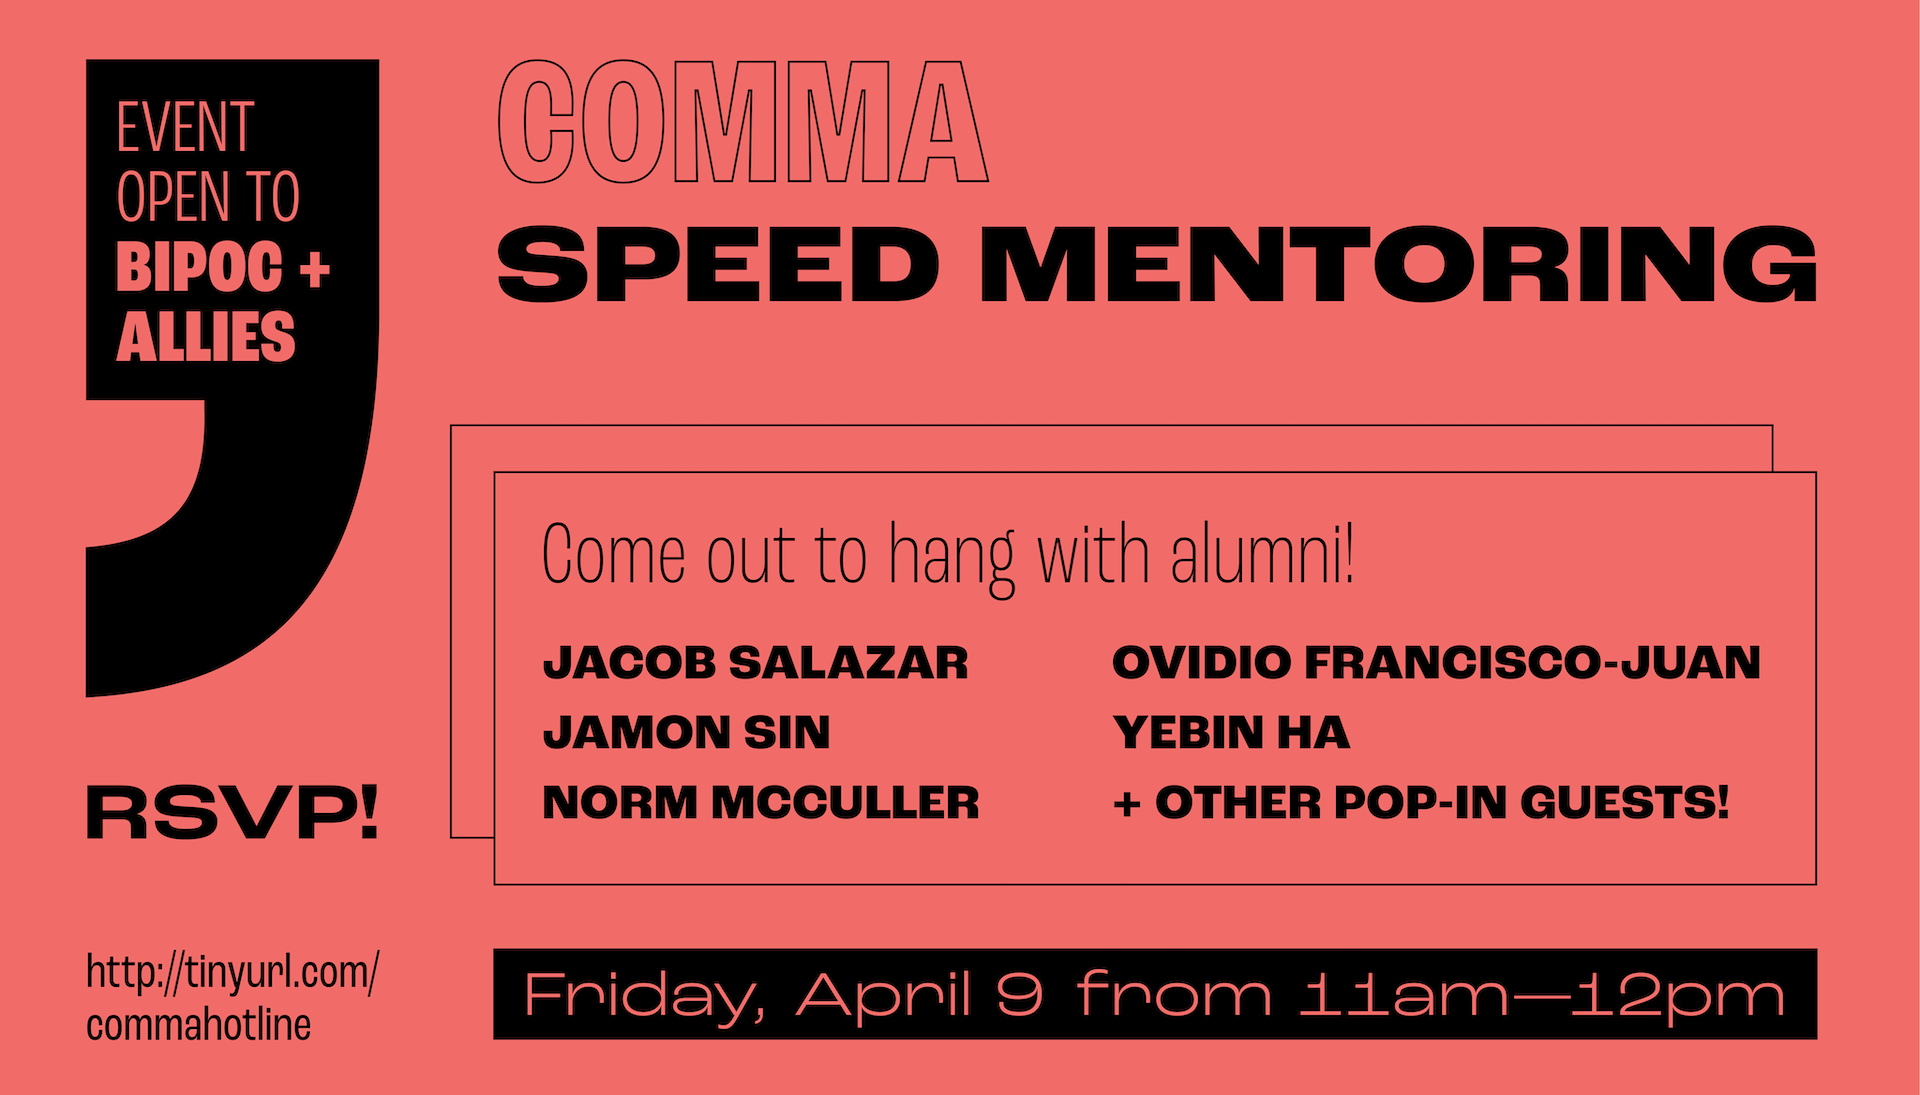 COMMA Speed Mentoring, opening to BIPOC + Allies! Come hang out with alumni: Jacob Salazar, Jamon Sin, Norm McCuller, and more! Friday April 9 at 11am. Sign up at tinyurl.com/commahotline